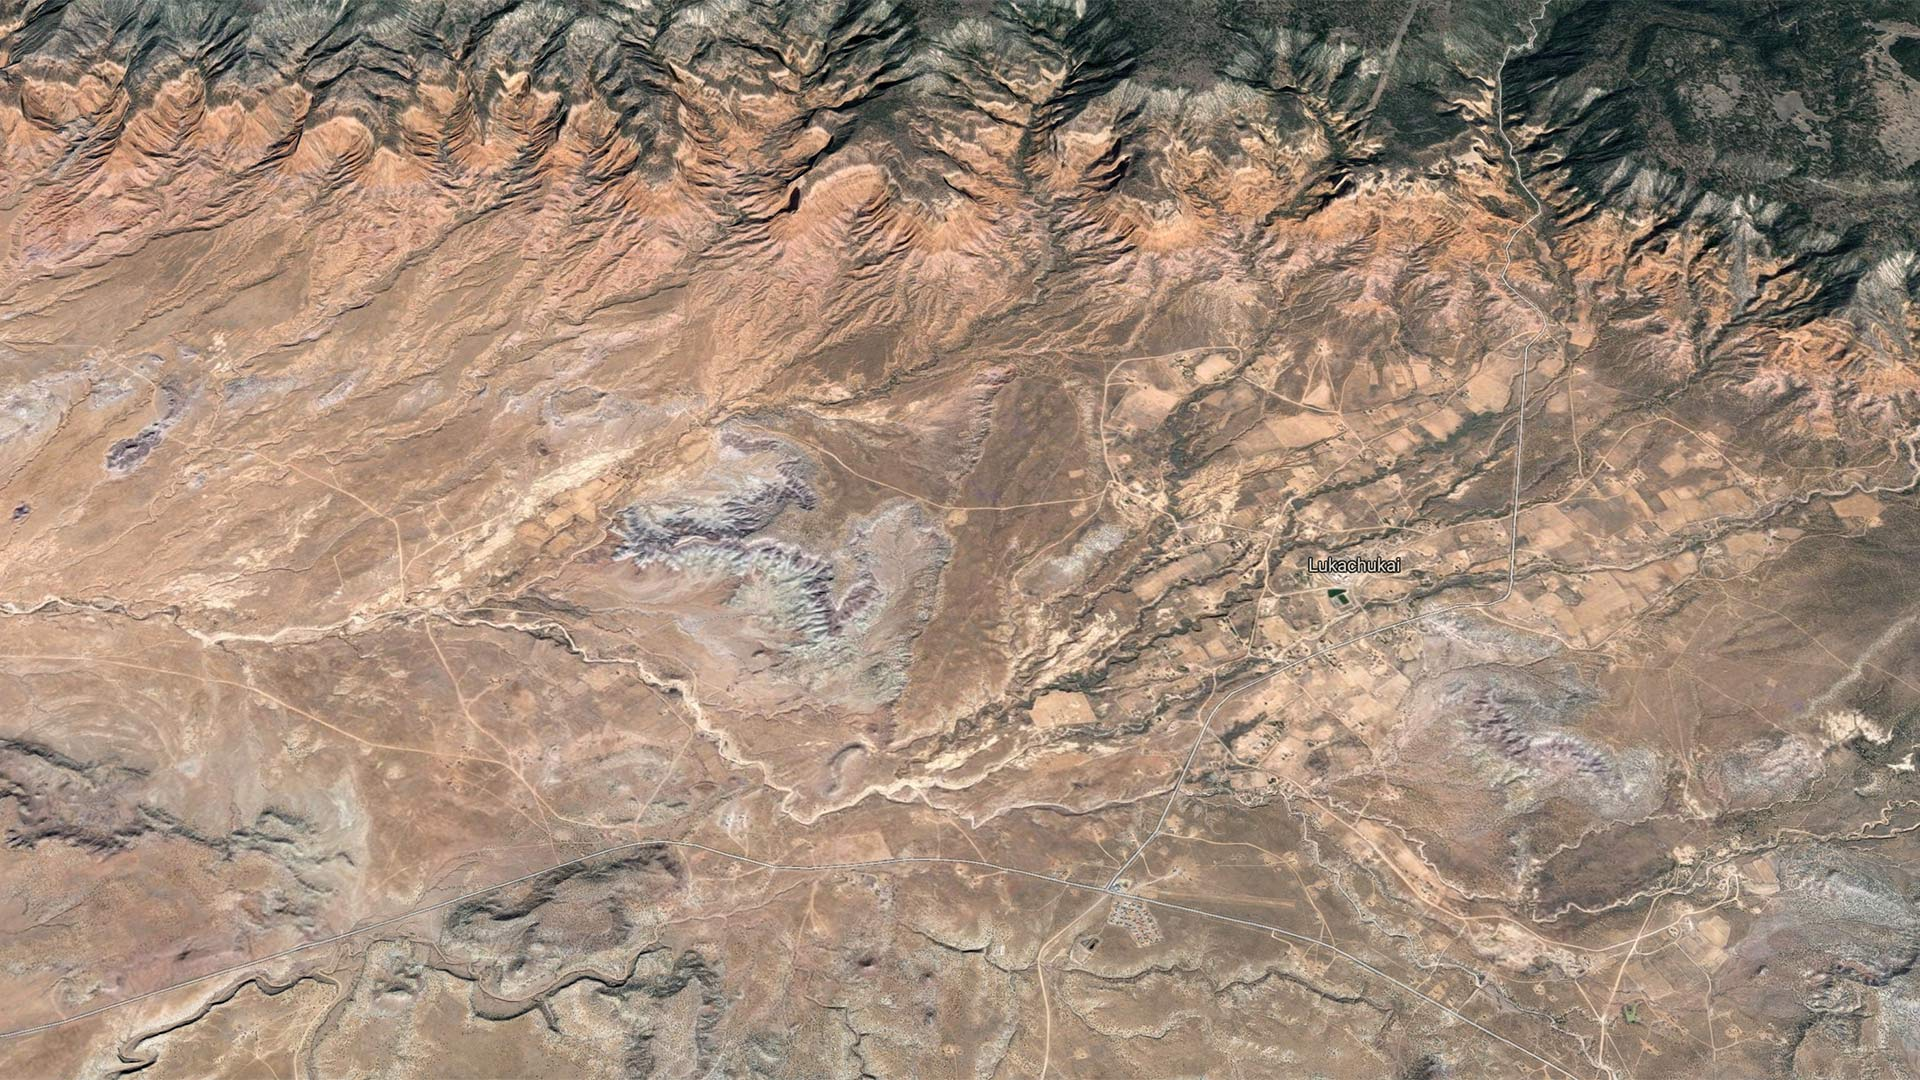 Google Maps view of Lukachukai, Arizona.